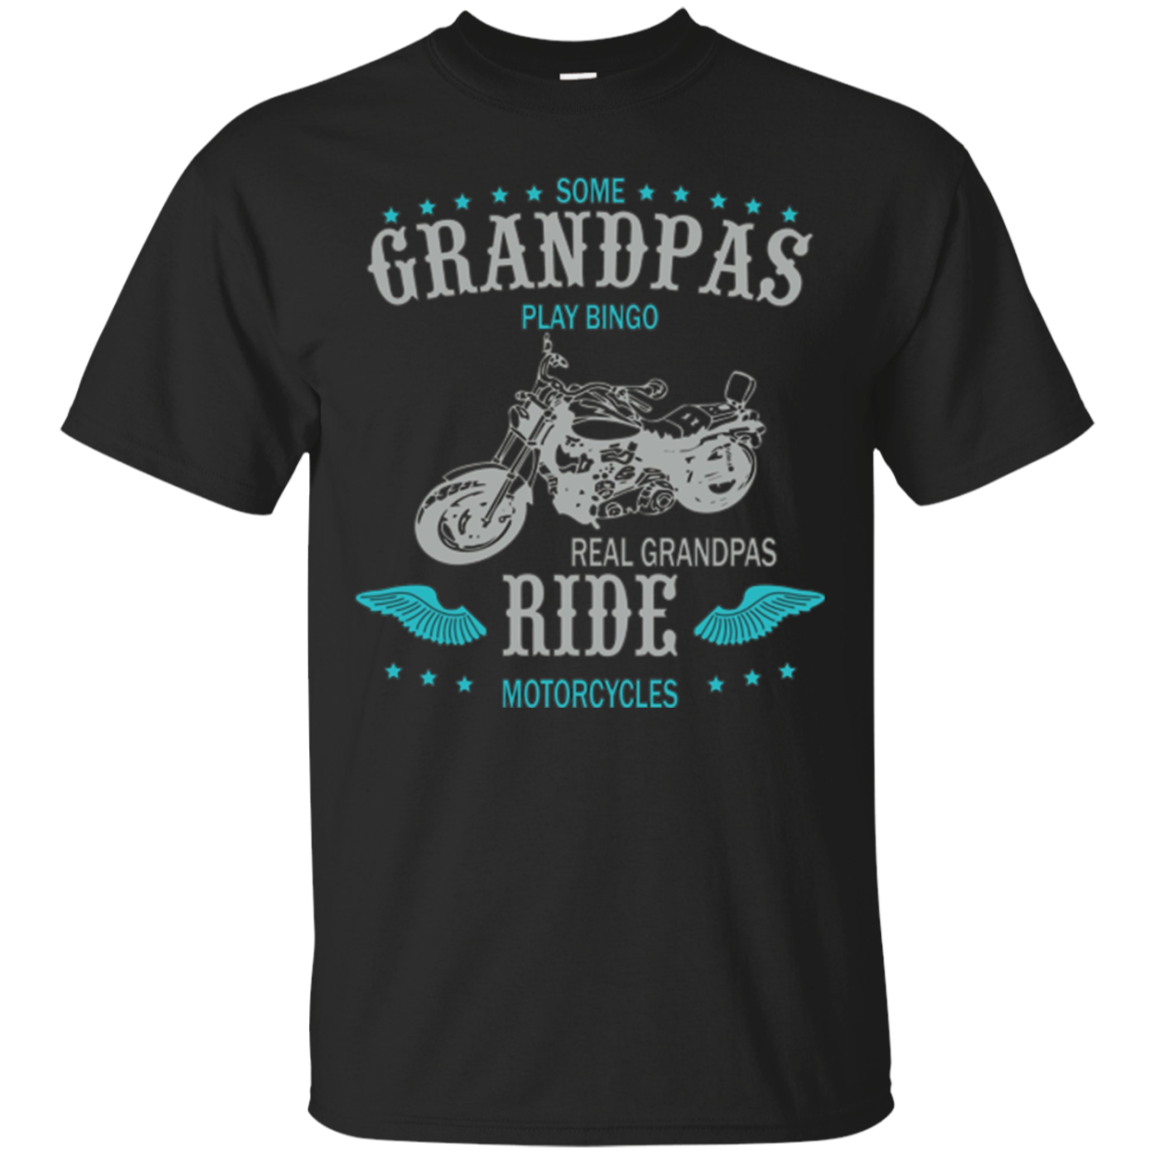 BIKER GRANPAS T SHIRT - Real grandpas ride motorcycles